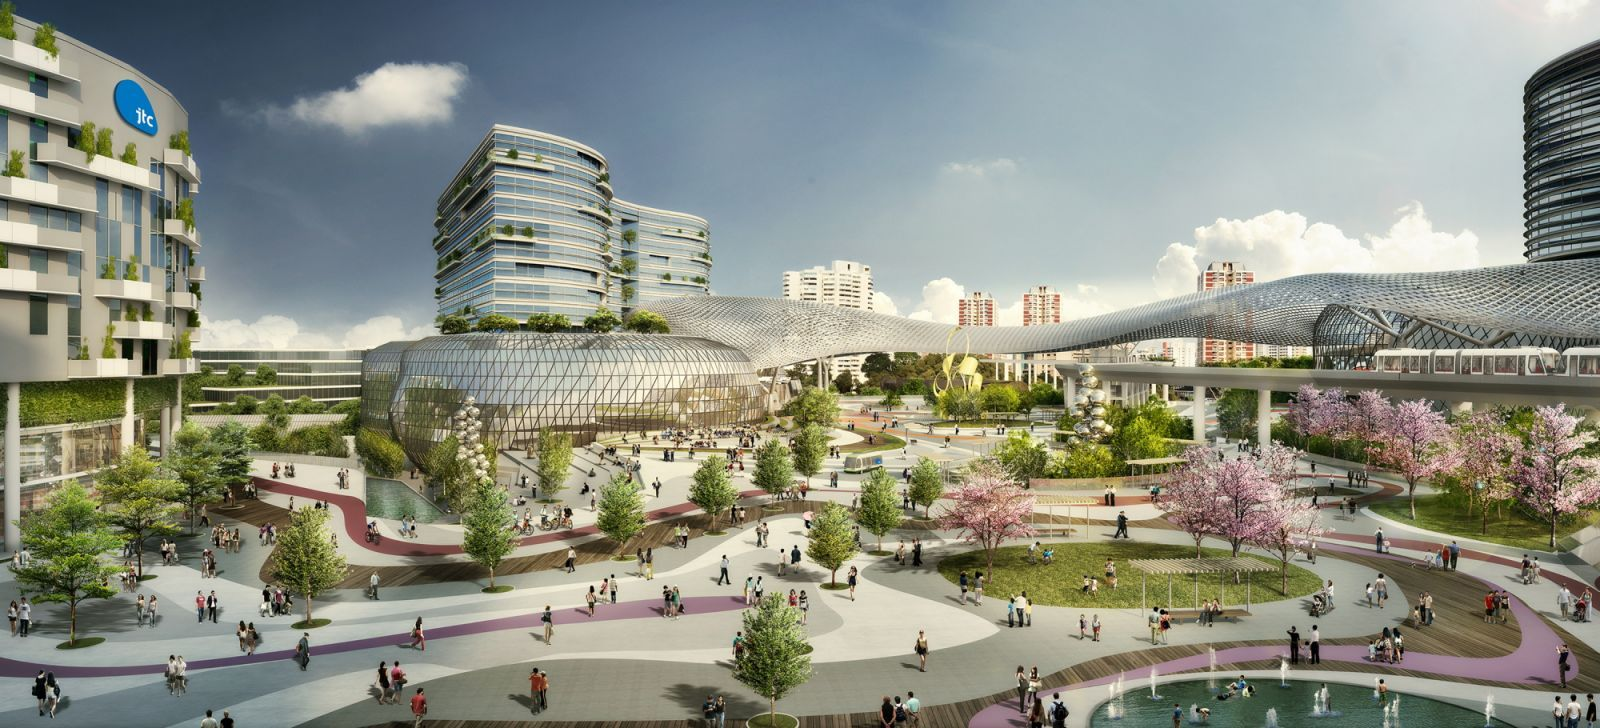 jurong innovation district jtc